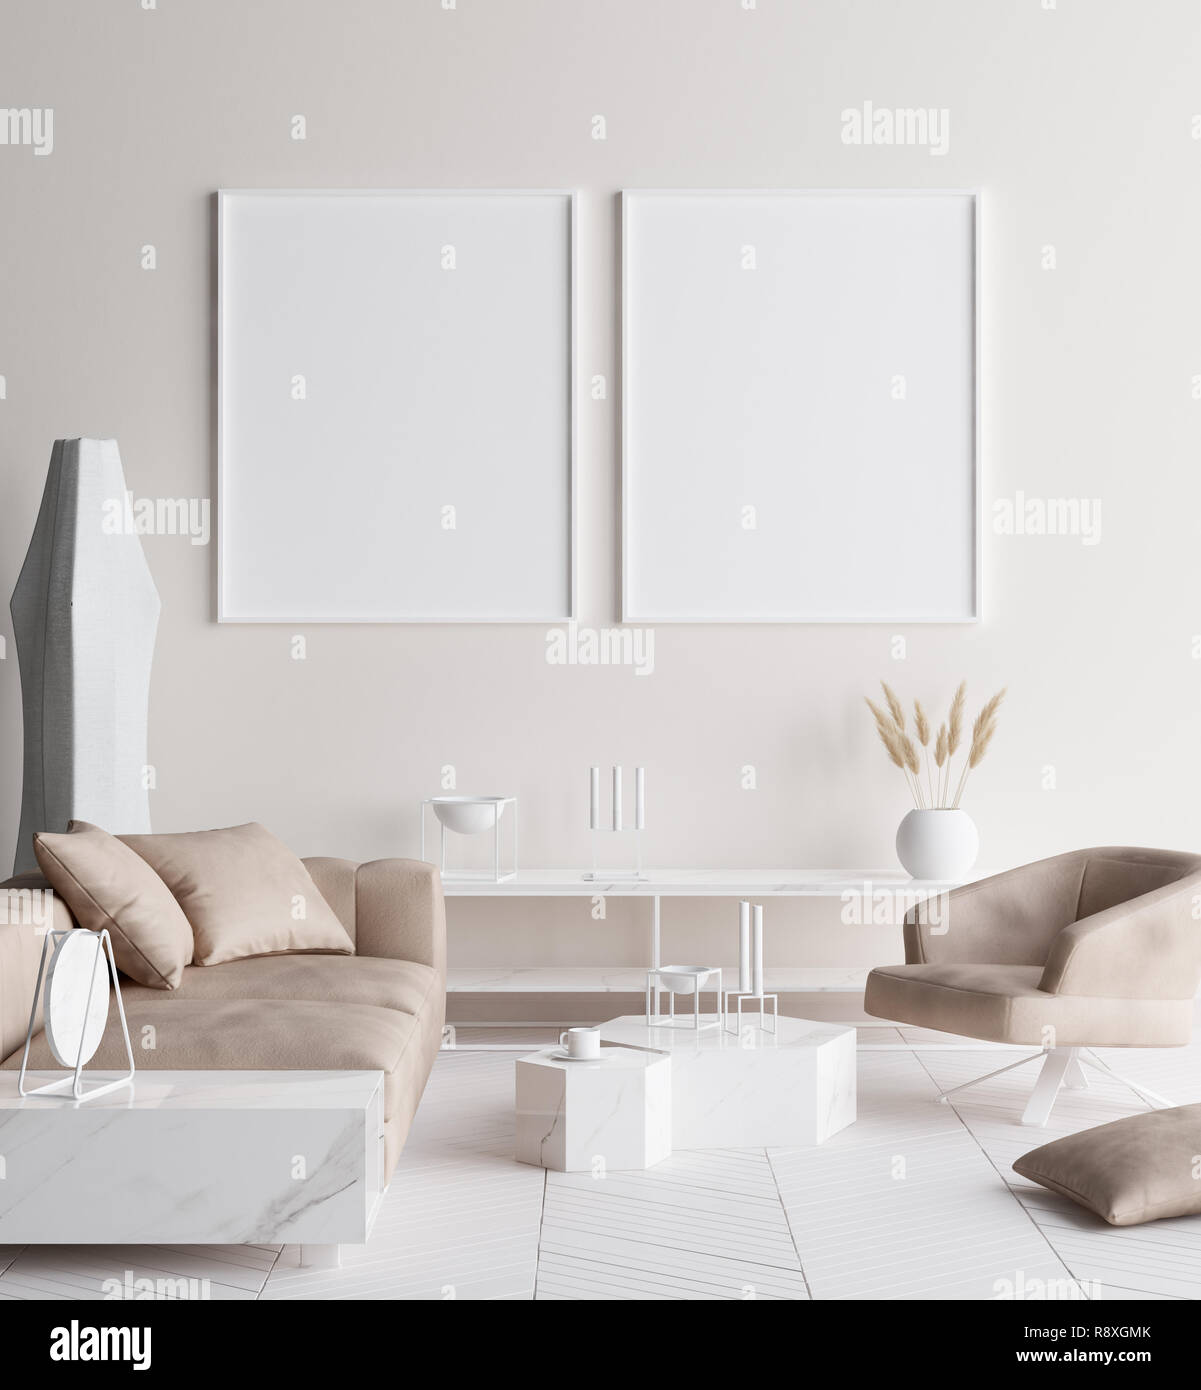 Gmk Home & Living Sofa Mock Up Poster Frame In Modern Home Interior Scandinavian